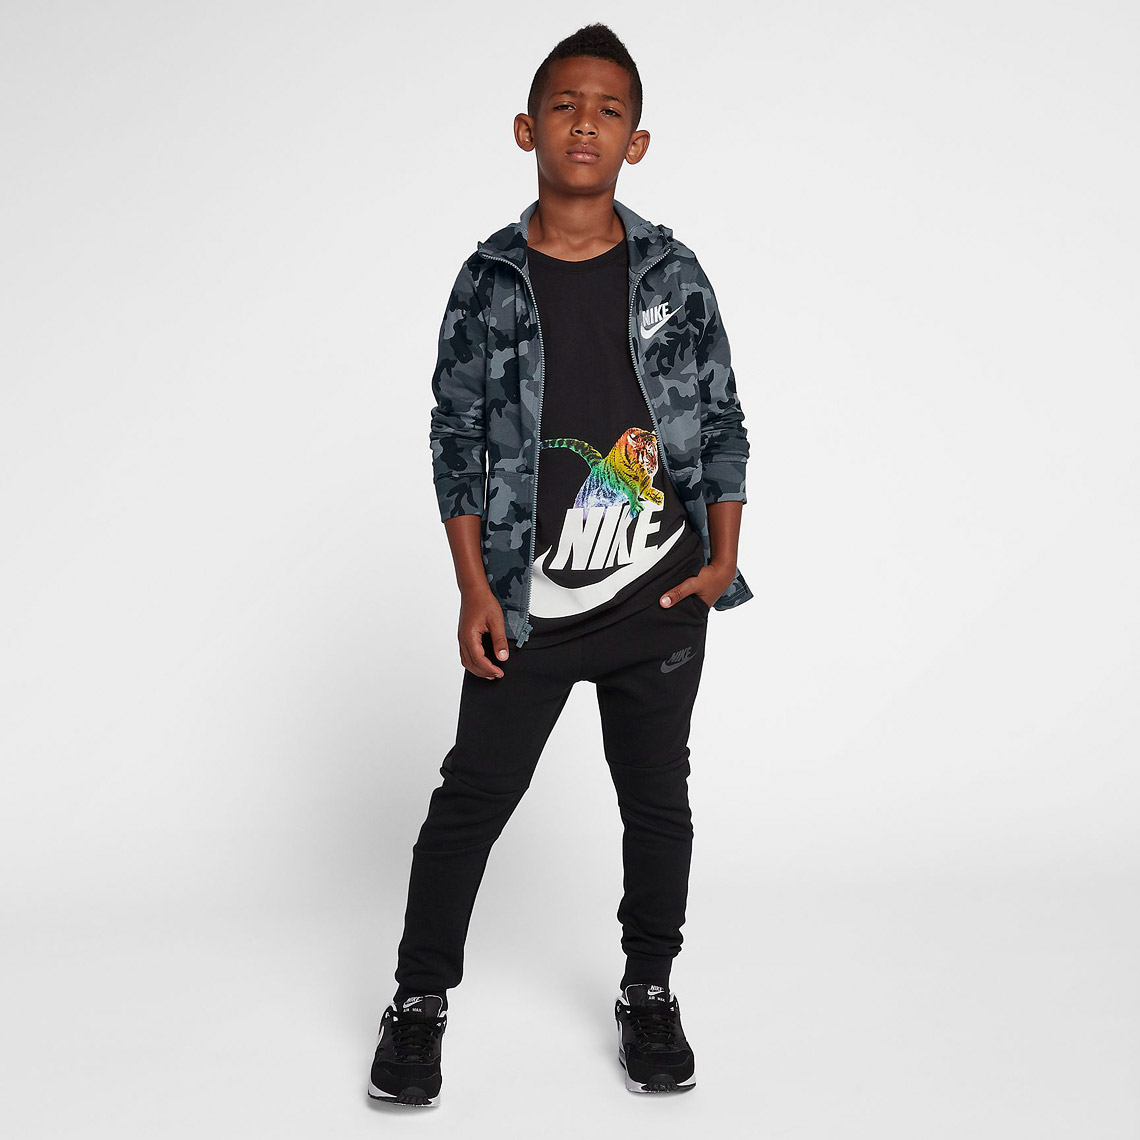 sportswear-big-kids-boys-full-zip-camo-hoodie-HsvsPWe